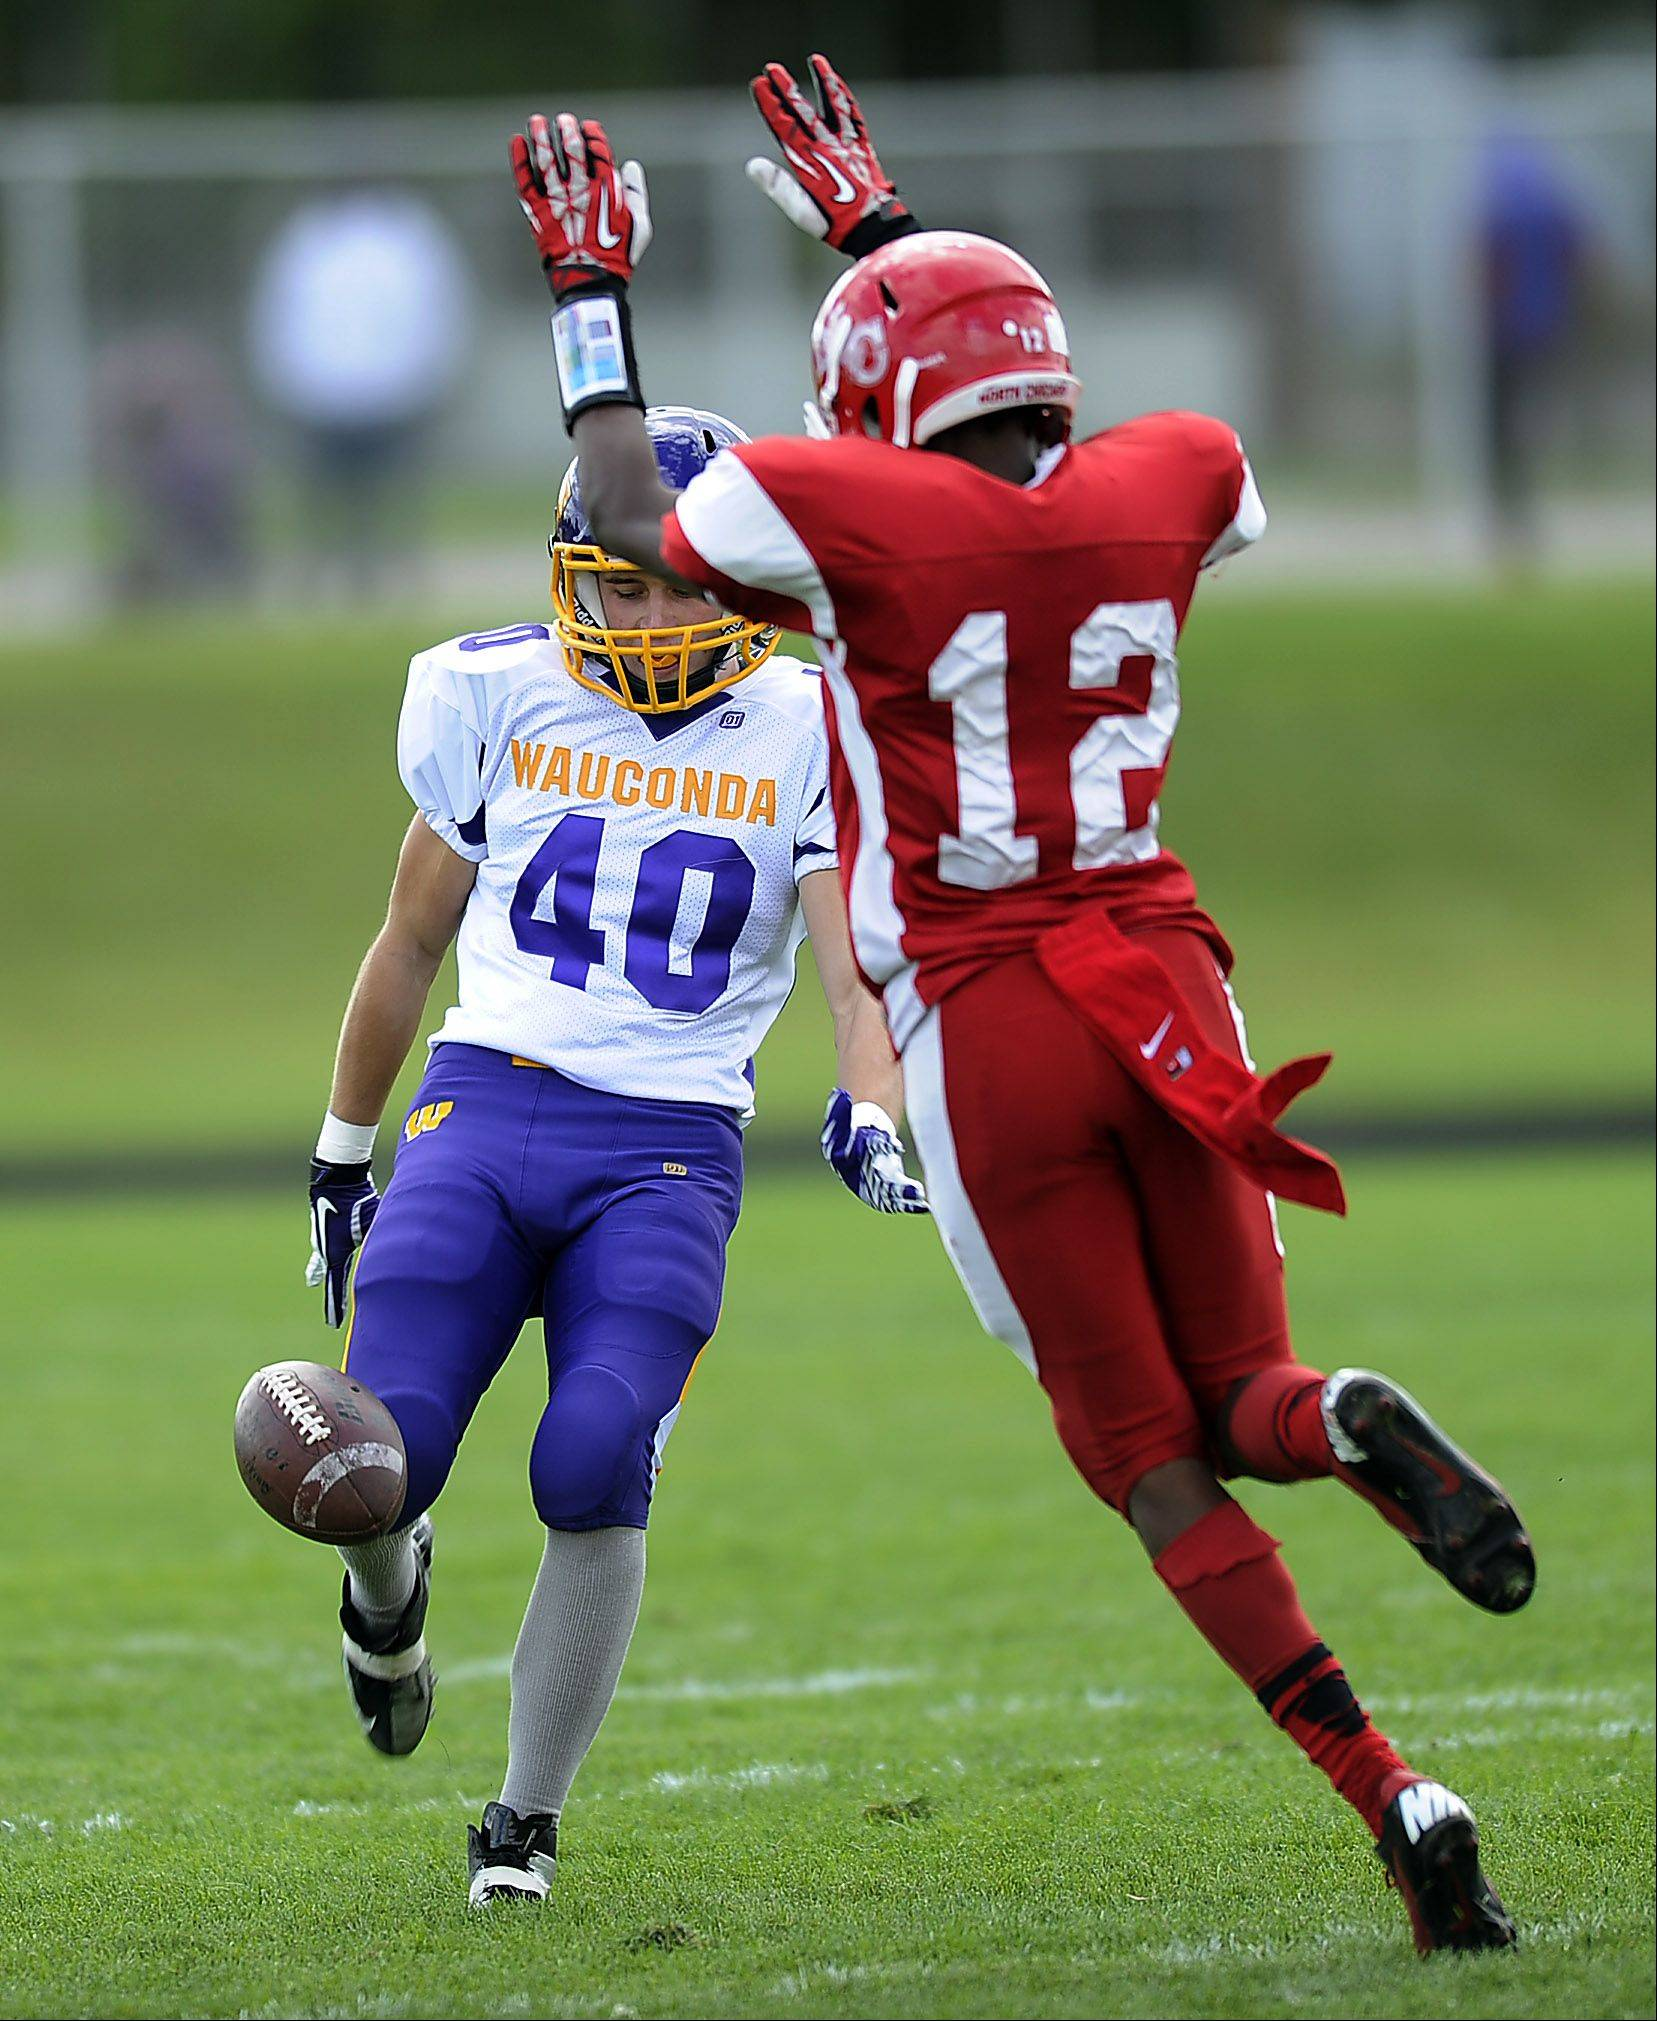 Wauconda's Elliot Hill has his punt blocked by North Chicago's Donte Rowell in the first quarter of varsity footbll at North Chicago High School on Saturday.